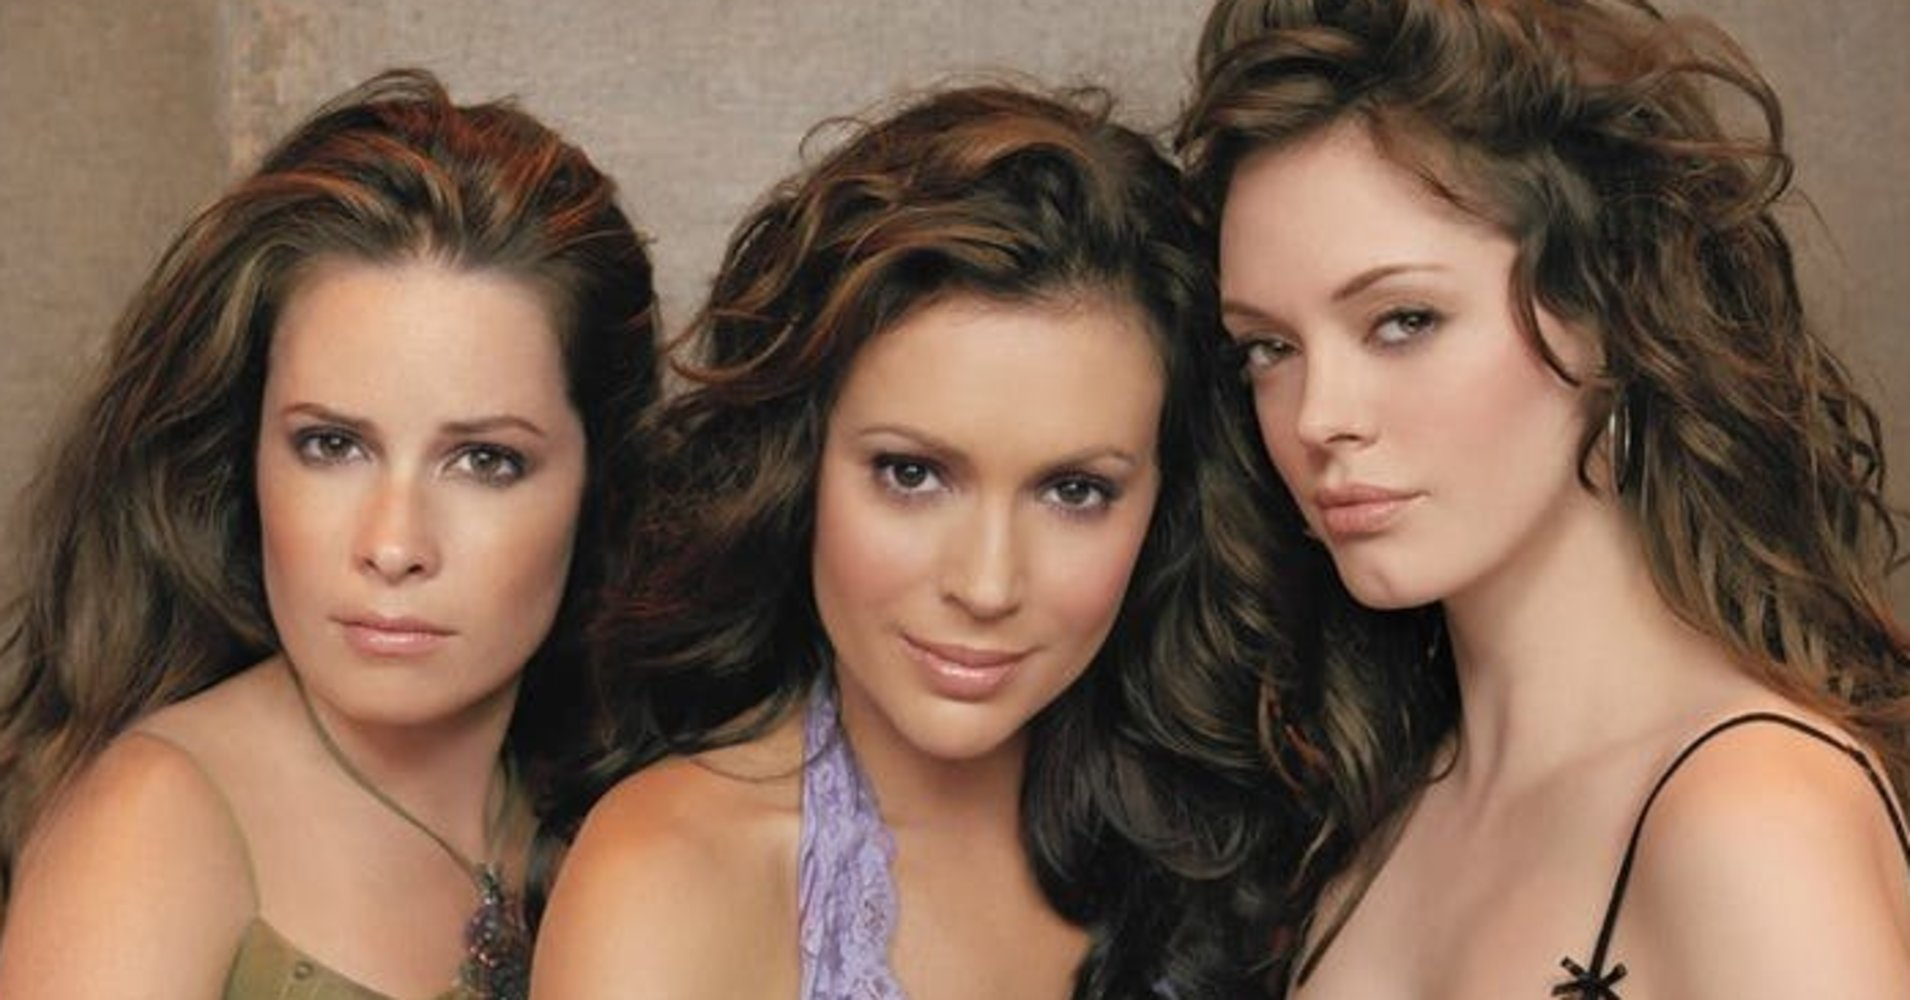 'Charmed' Reboot To Feature A Lesbian Sister